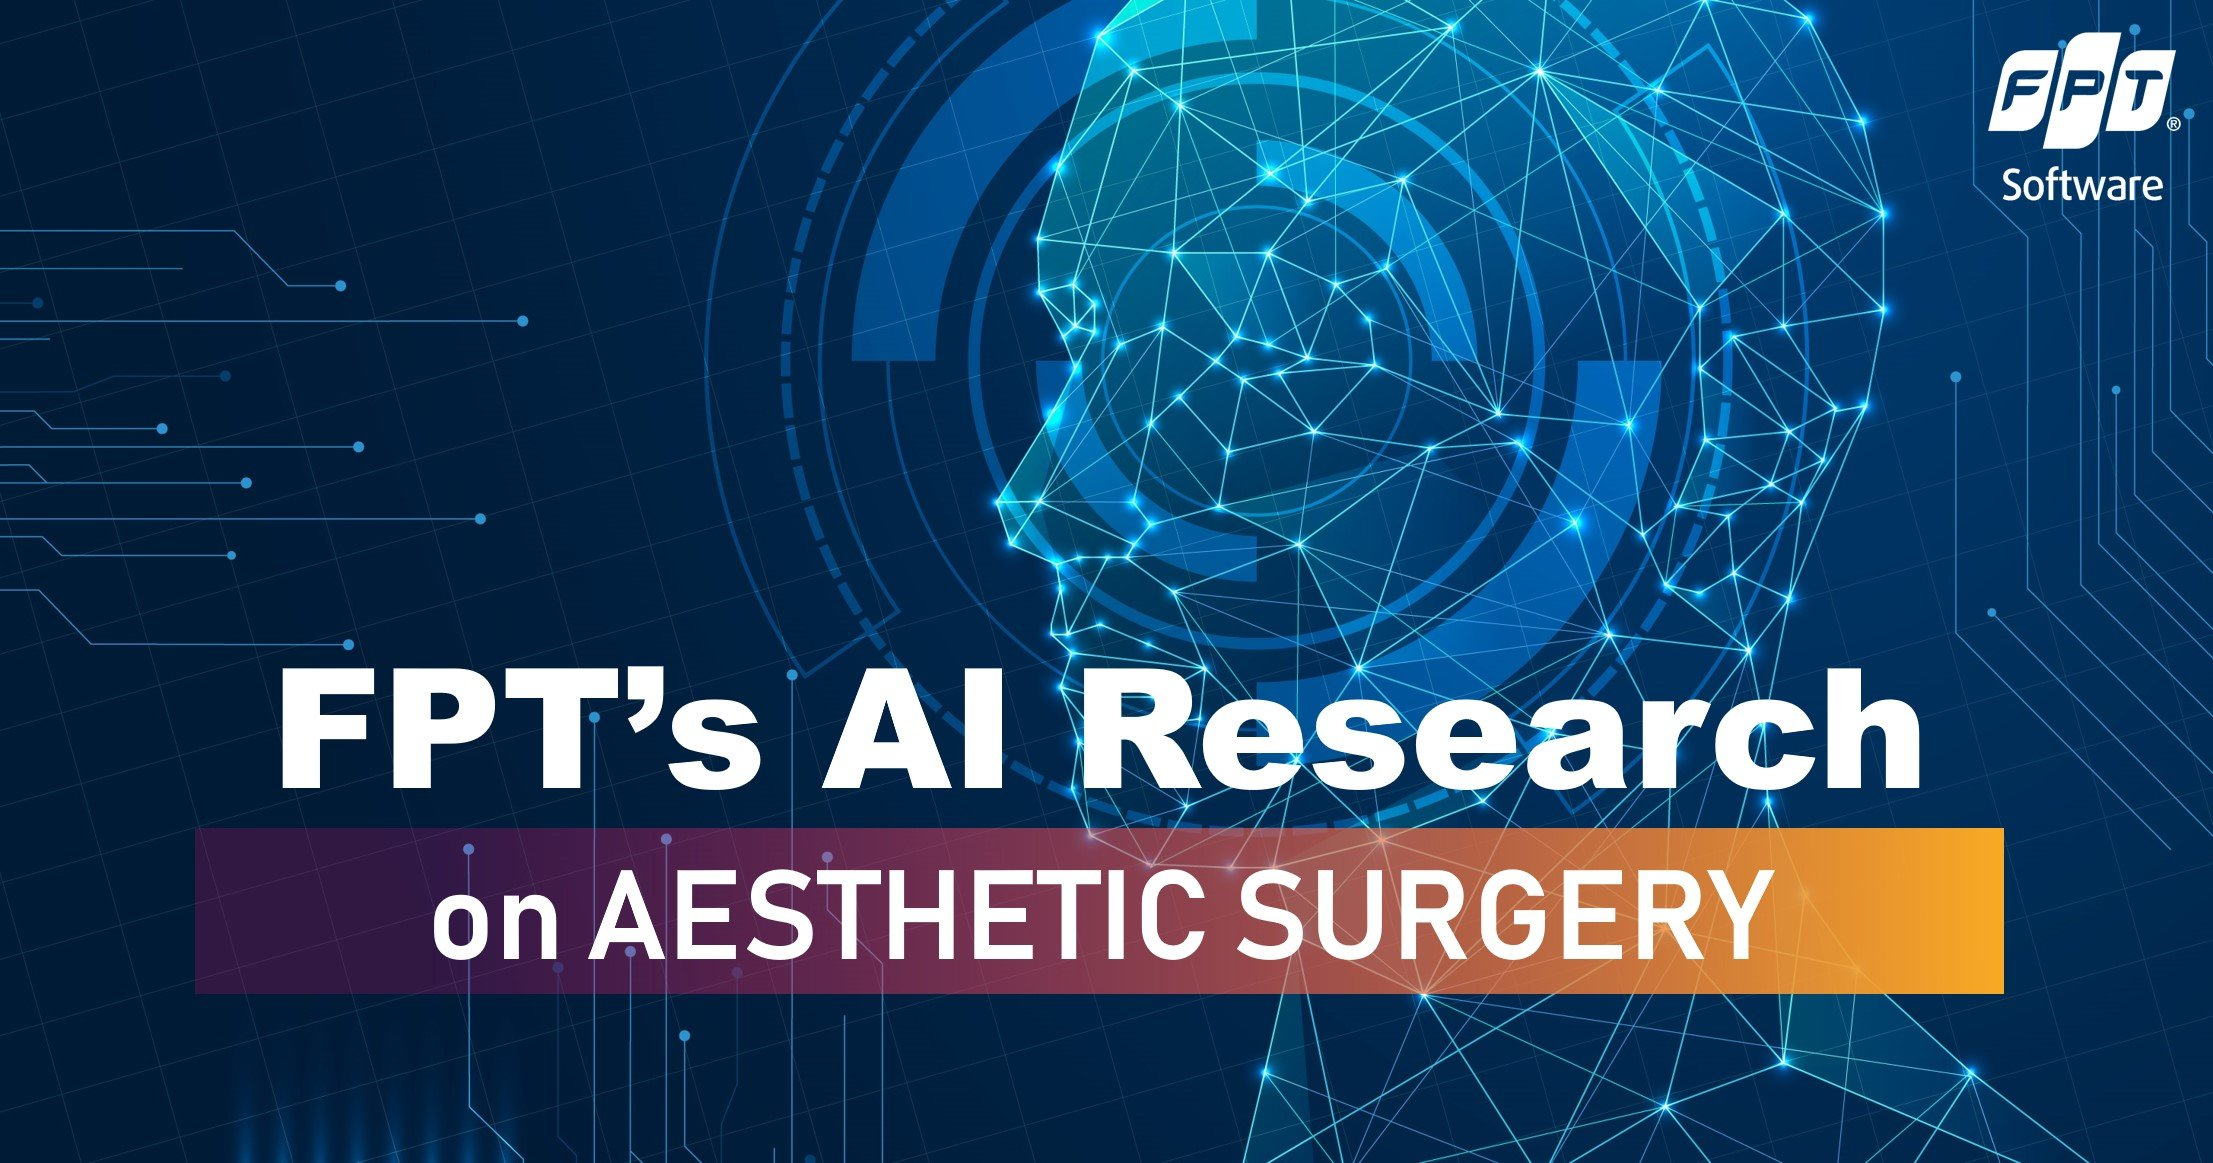 AI research on aesthetic surgery published